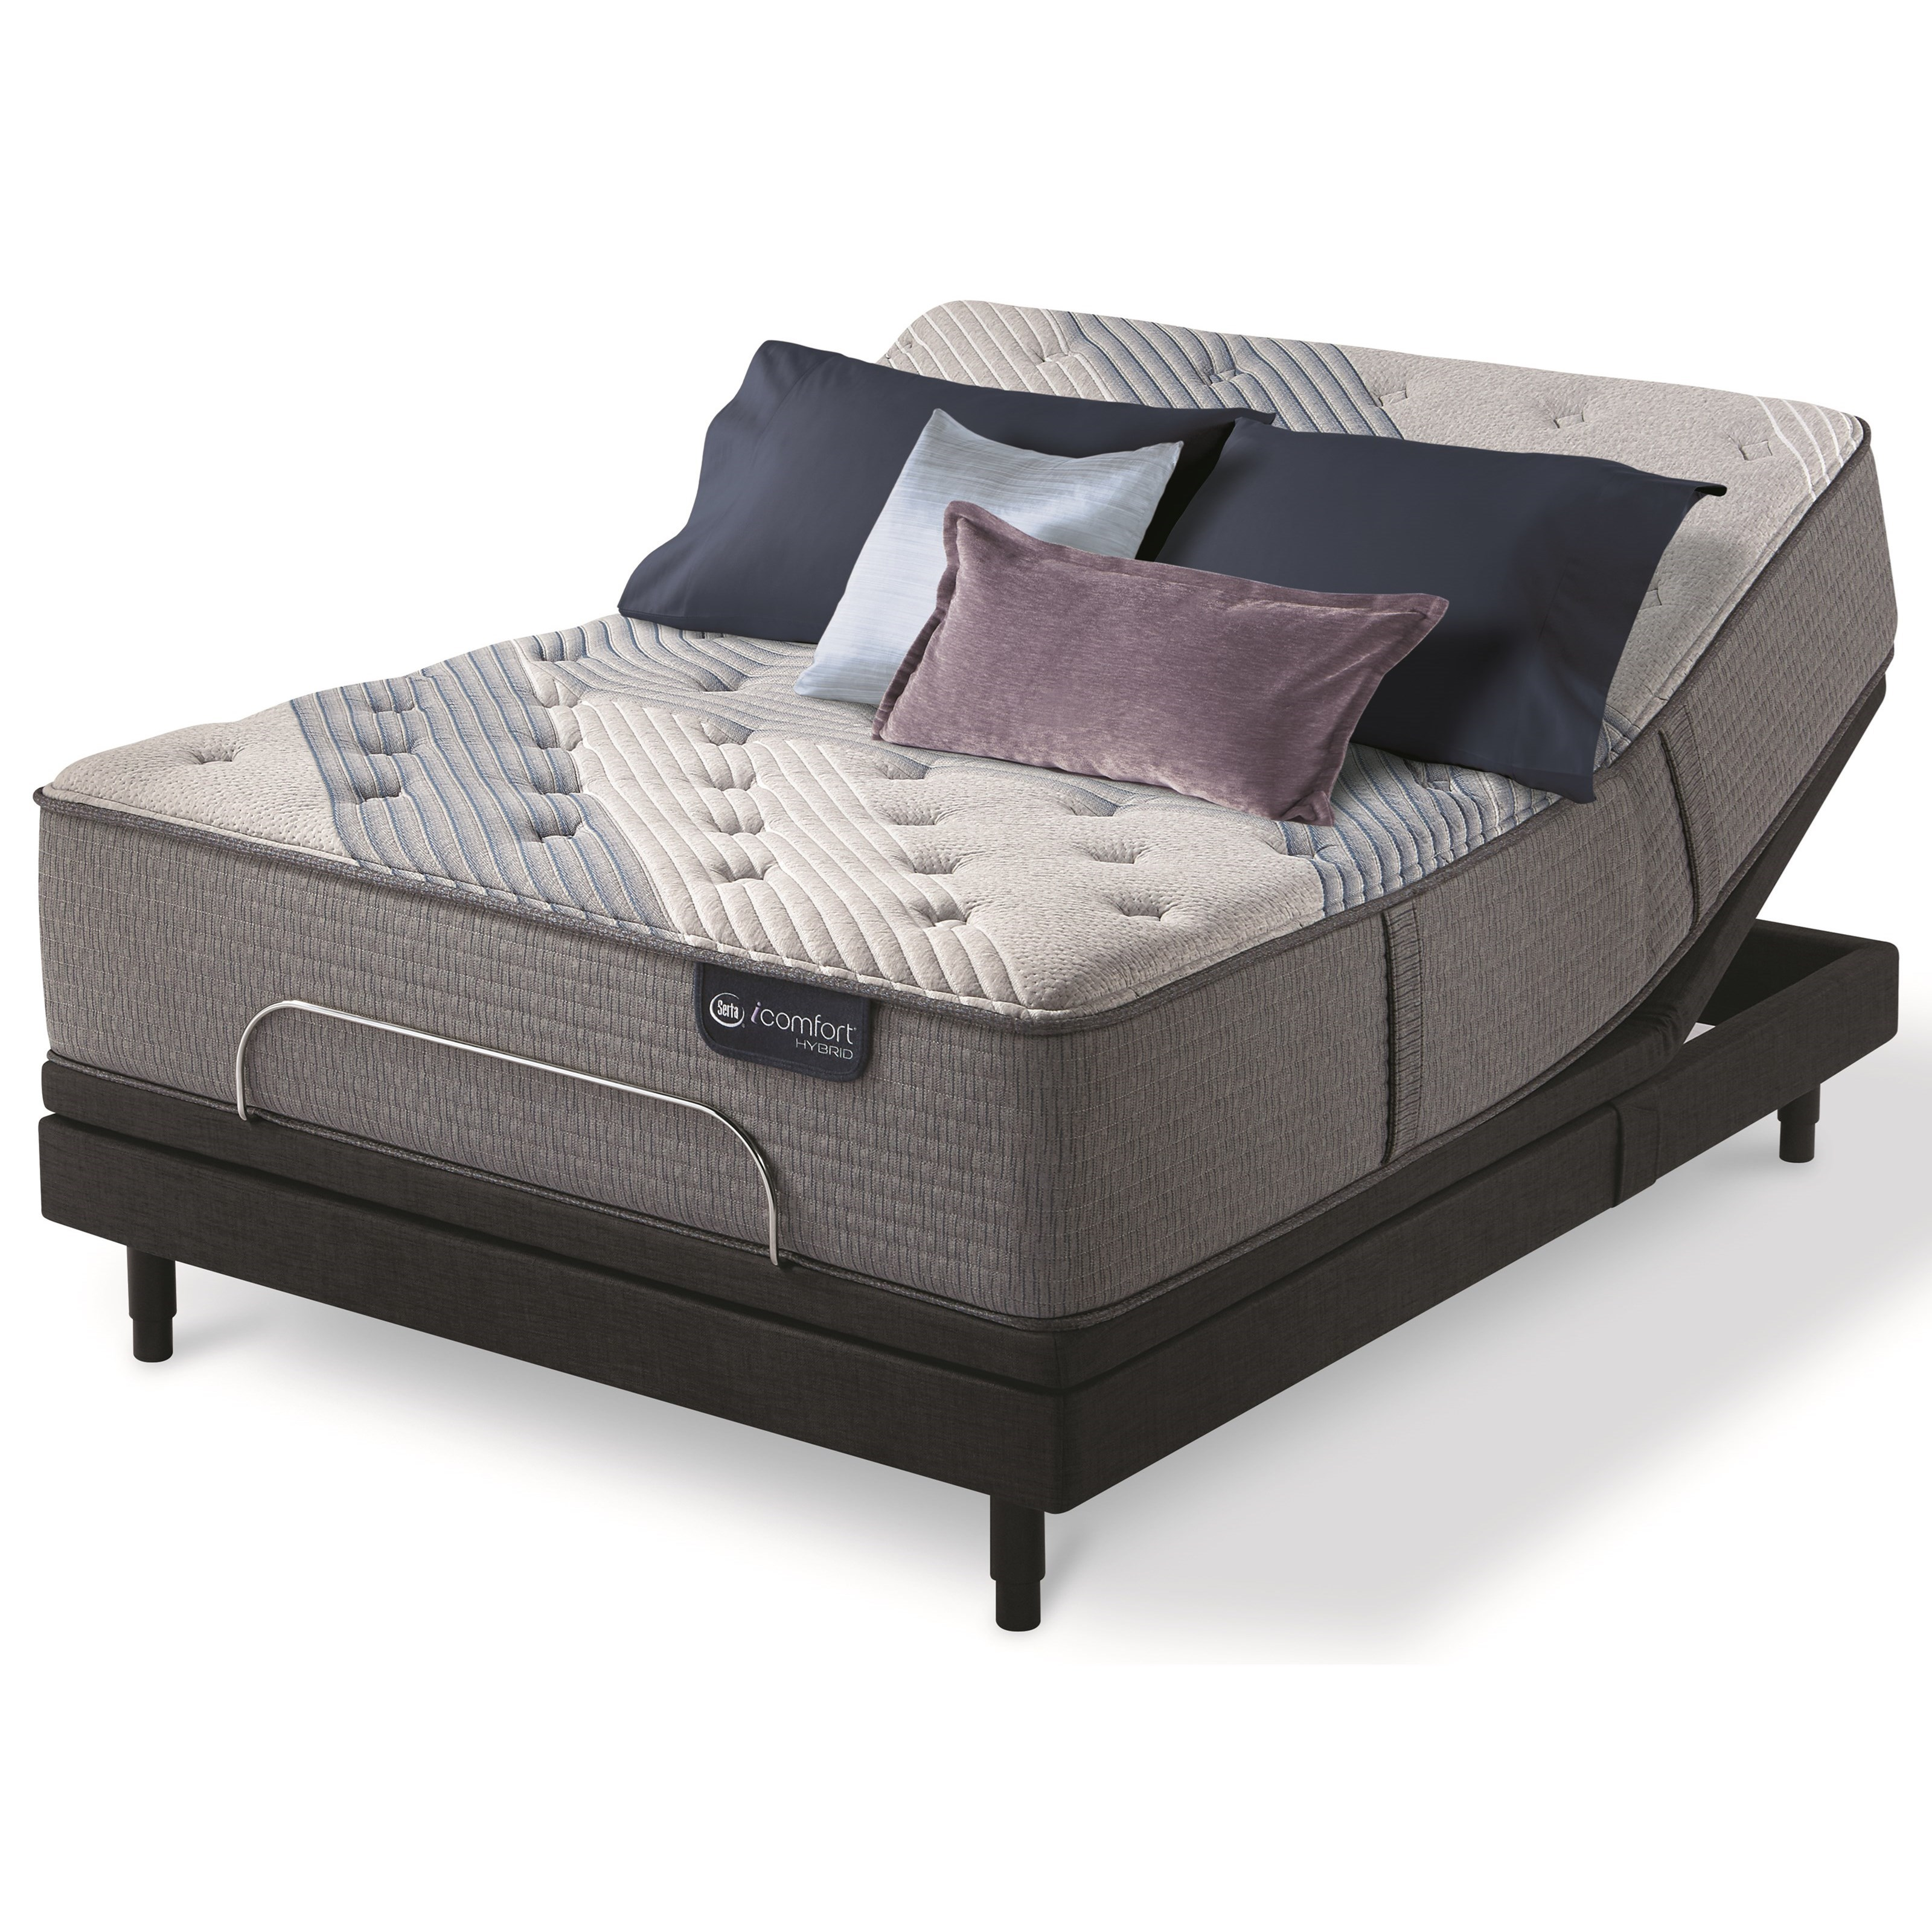 Serta Icomfort Hybrid Blue Fusion 1000 Lux Firm King